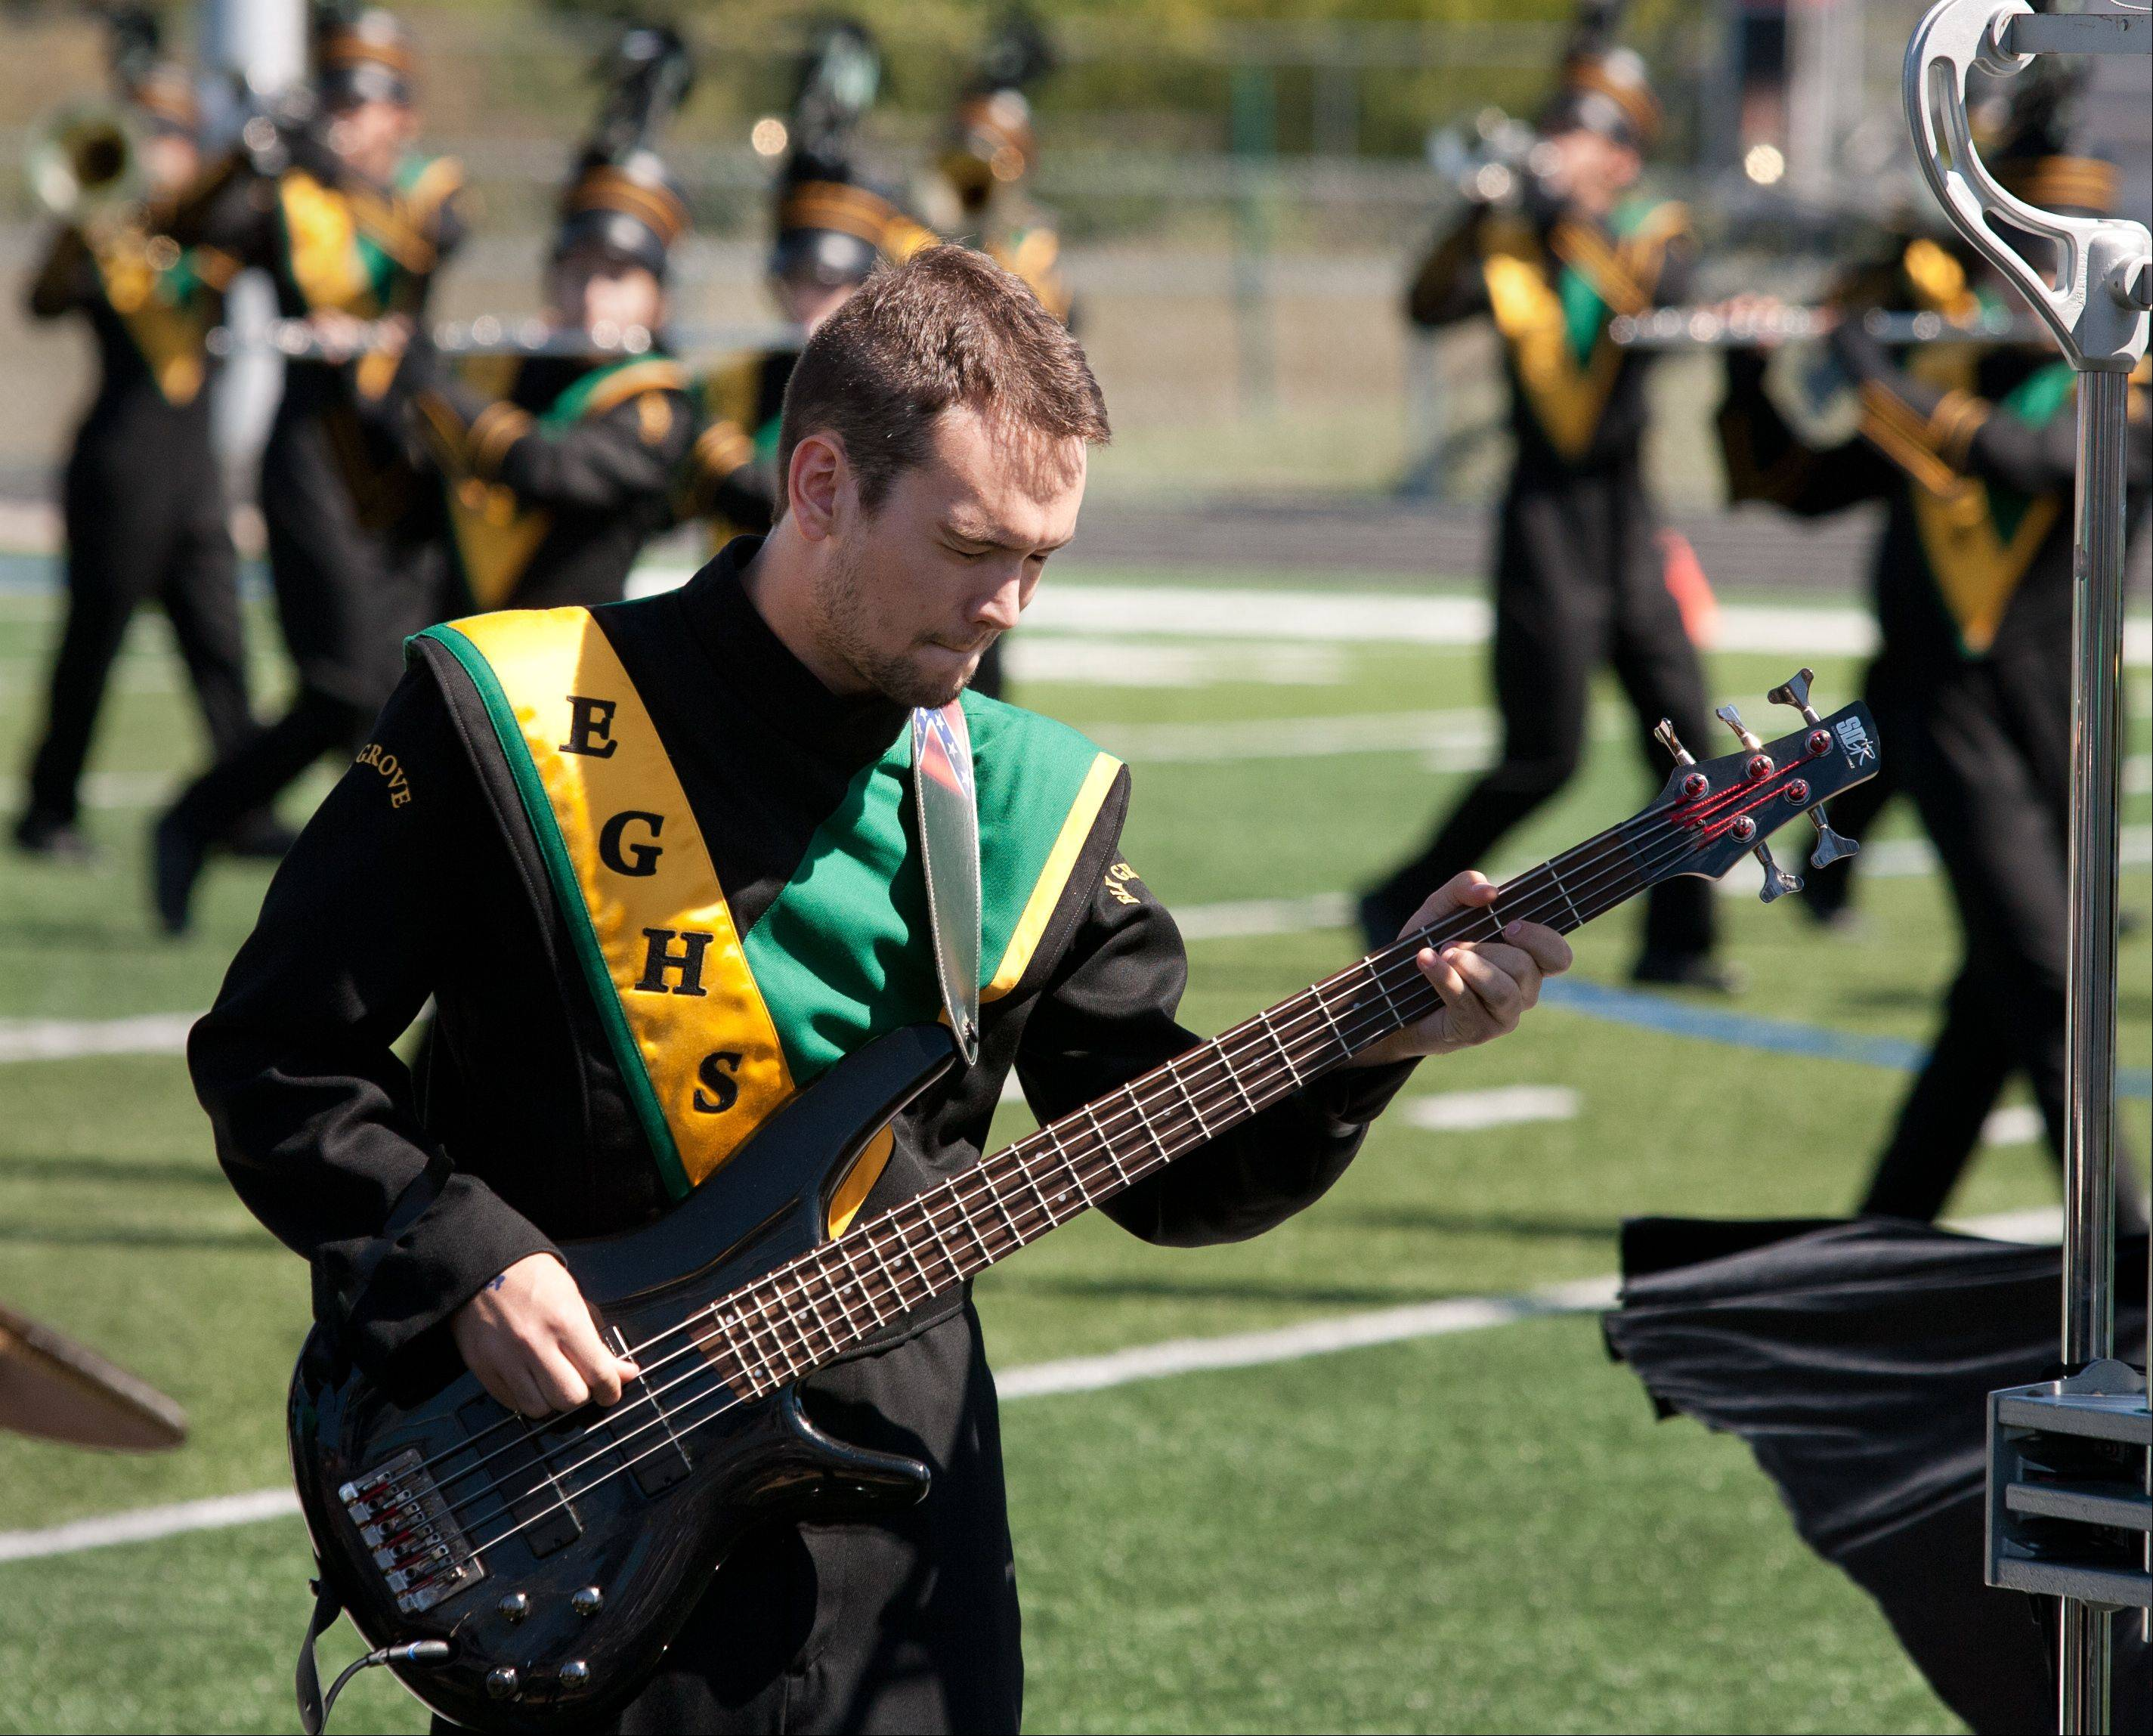 Elk Grove High School Marching Band member Jesse Sneath plays the bass Saturday during the 35th annual Lancer Joust Marching Band Competition.